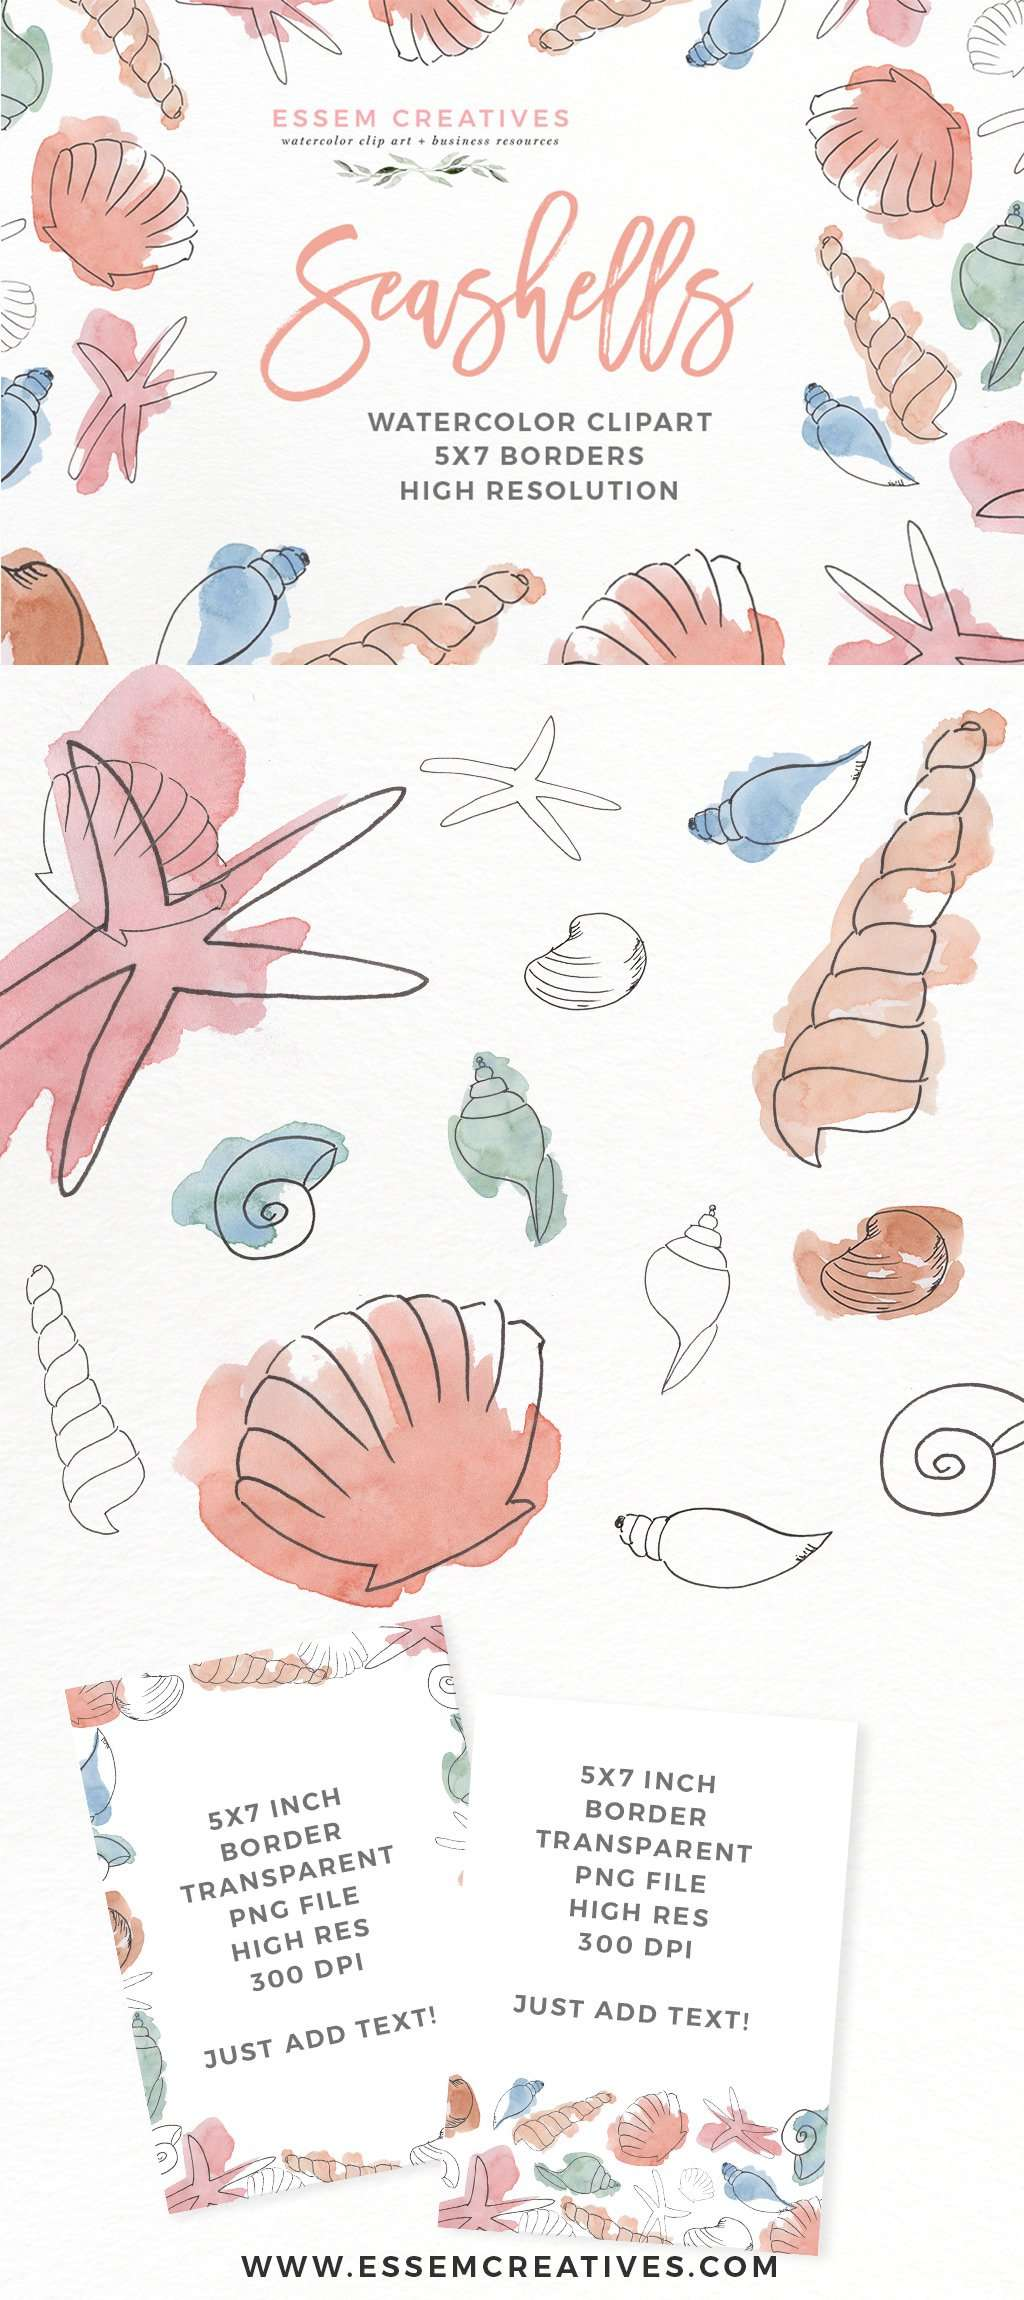 Watercolor Seashells Clipart | Under the Sea Birthday Party | Invitation Decorations Baby Shower Nursery by Essem Creatives | Get started on your design project right away. Click to see>>